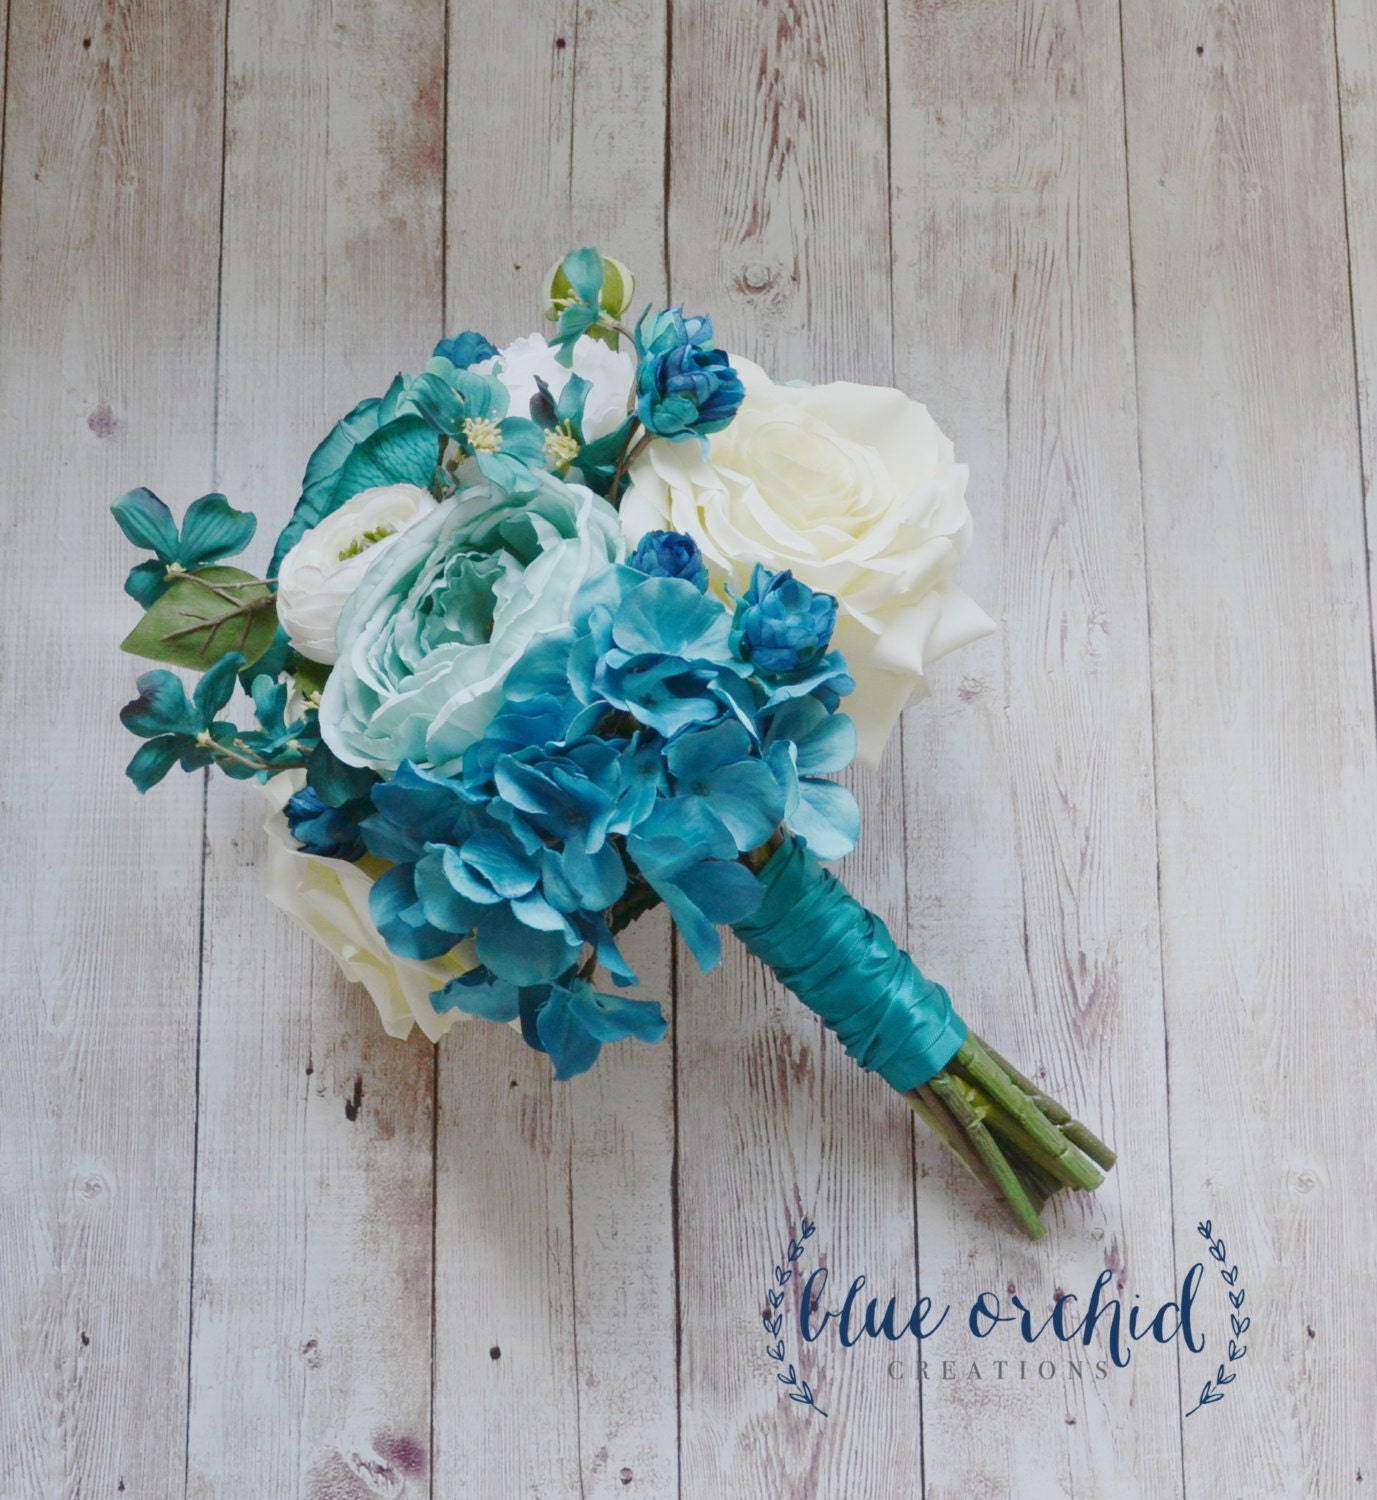 Turquoise Flowers For Wedding: Silk Wedding Bouquet With Blue Turquoise Ranunculus Rose